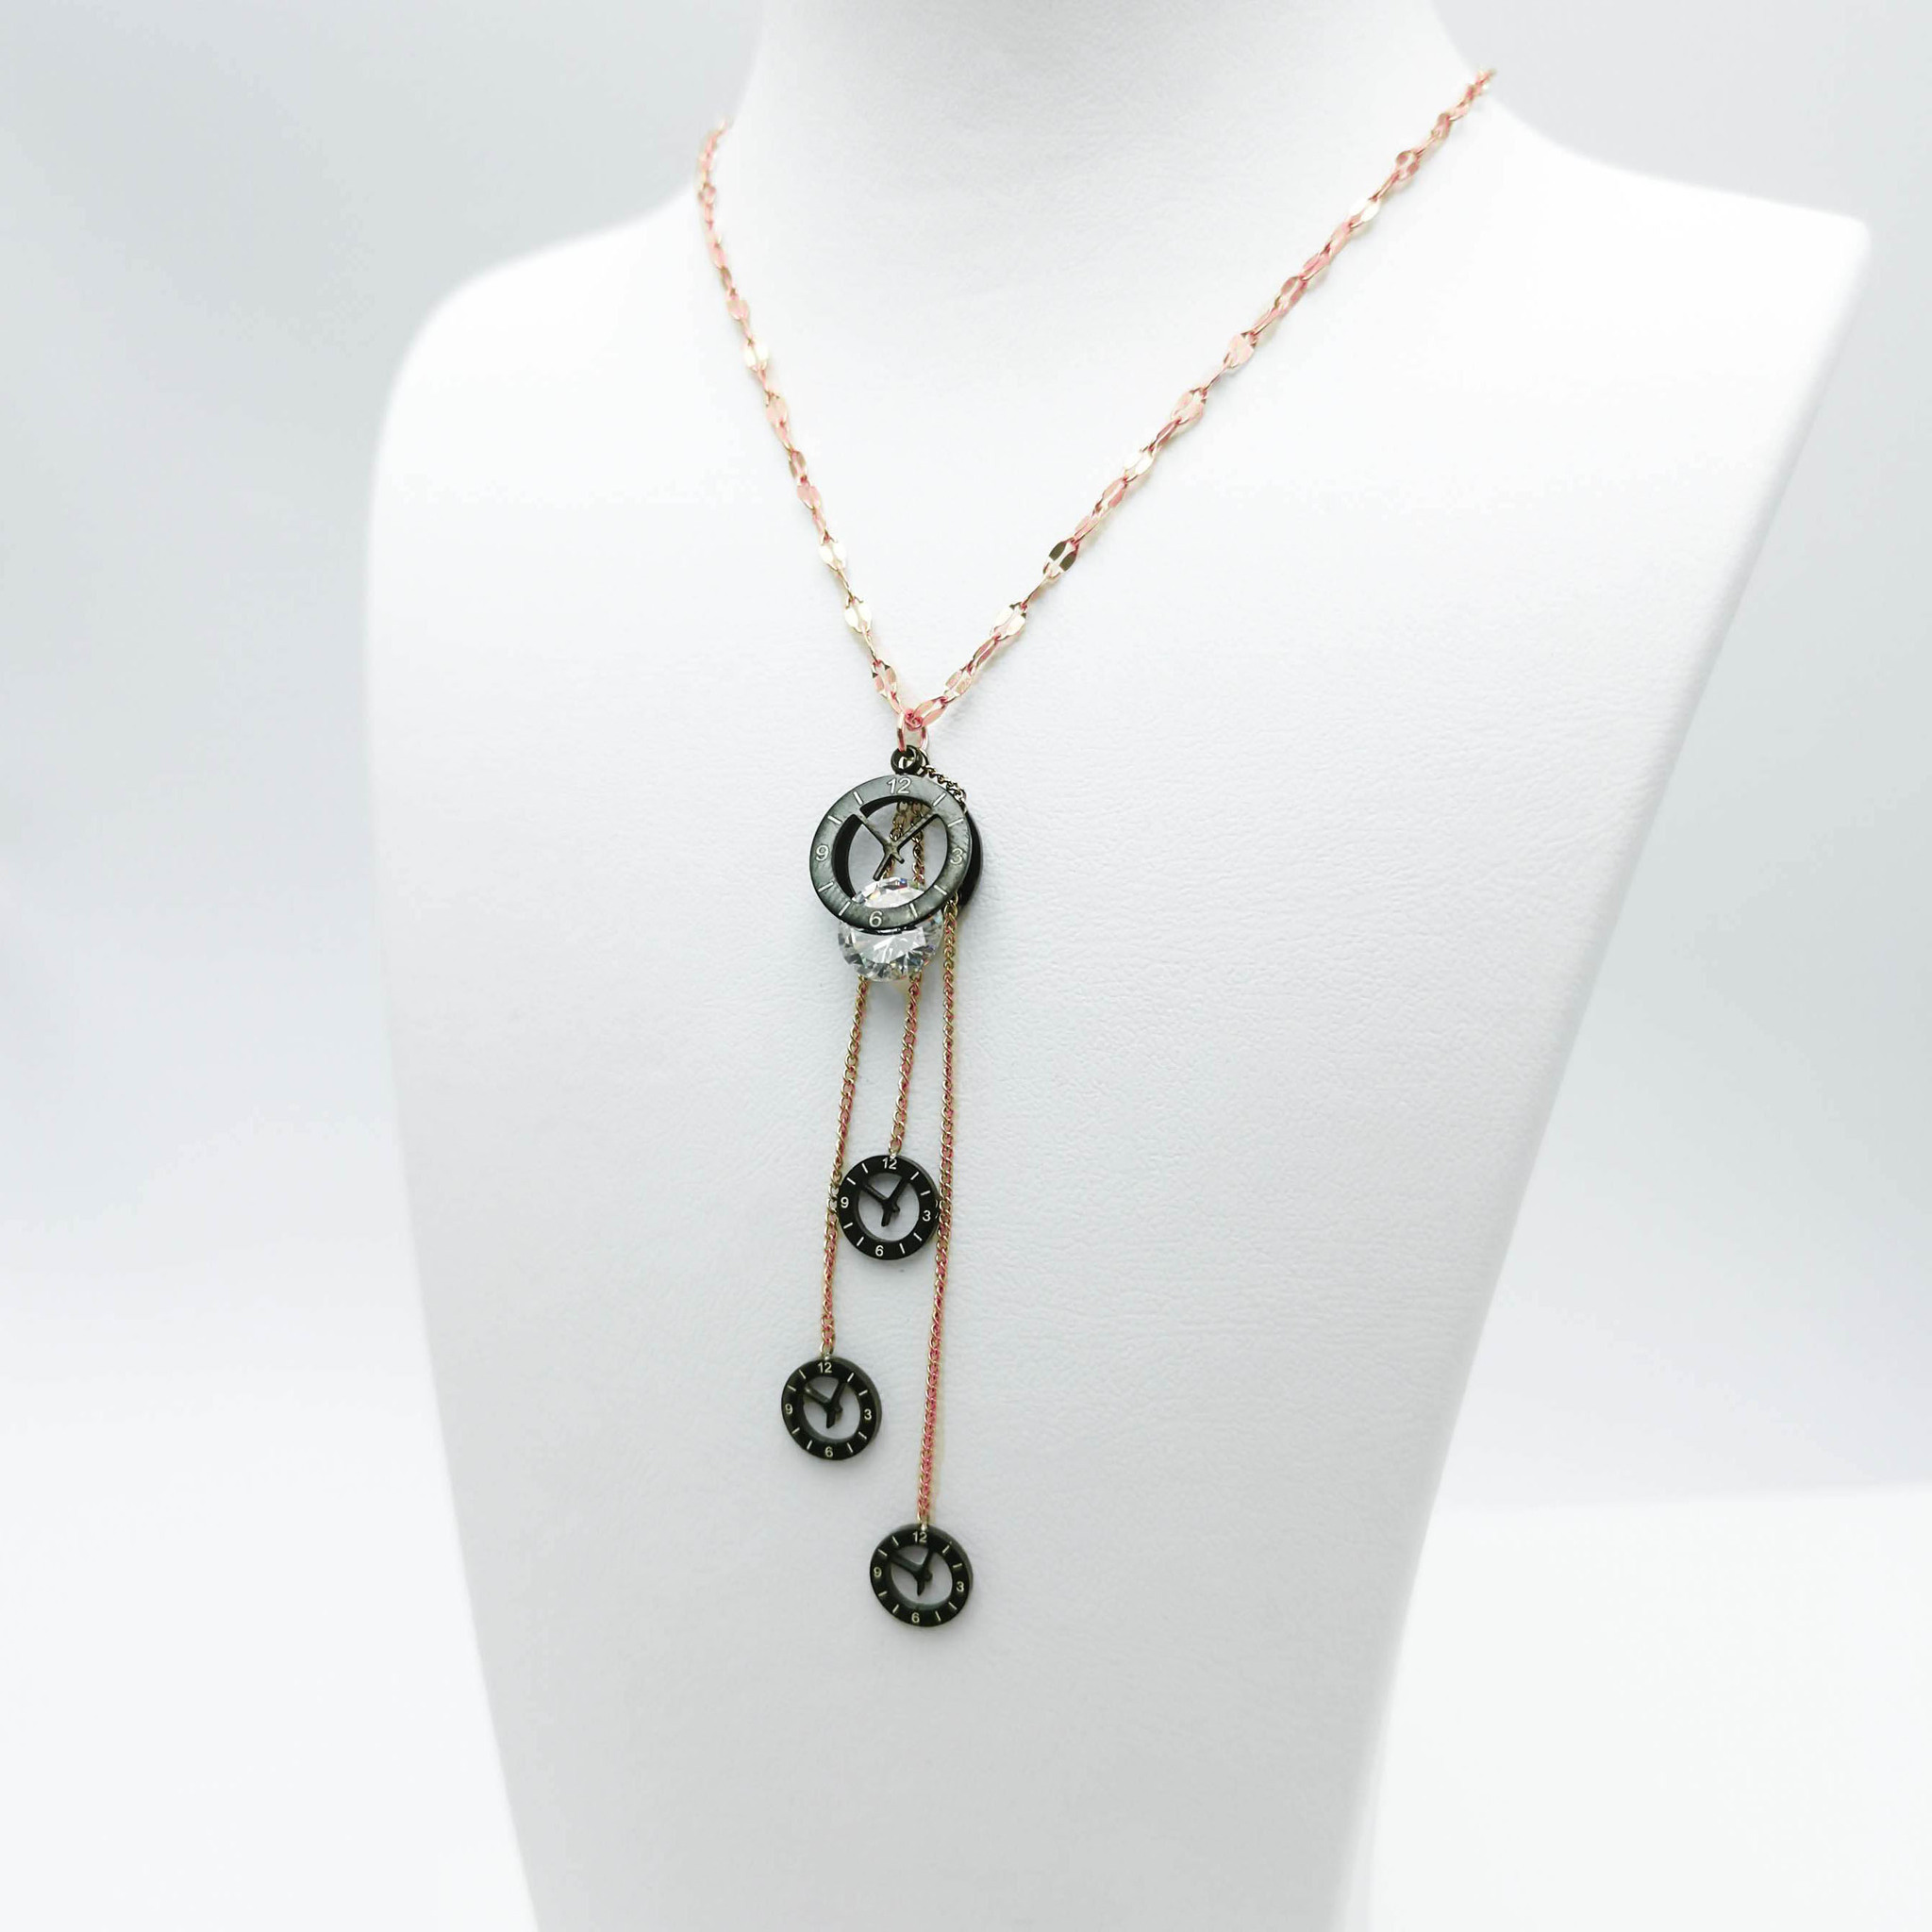 1- Lifetime Moments Halsband Modern and trendy Necklace and women jewelry and accessories from SWEVALI fashion Sweden